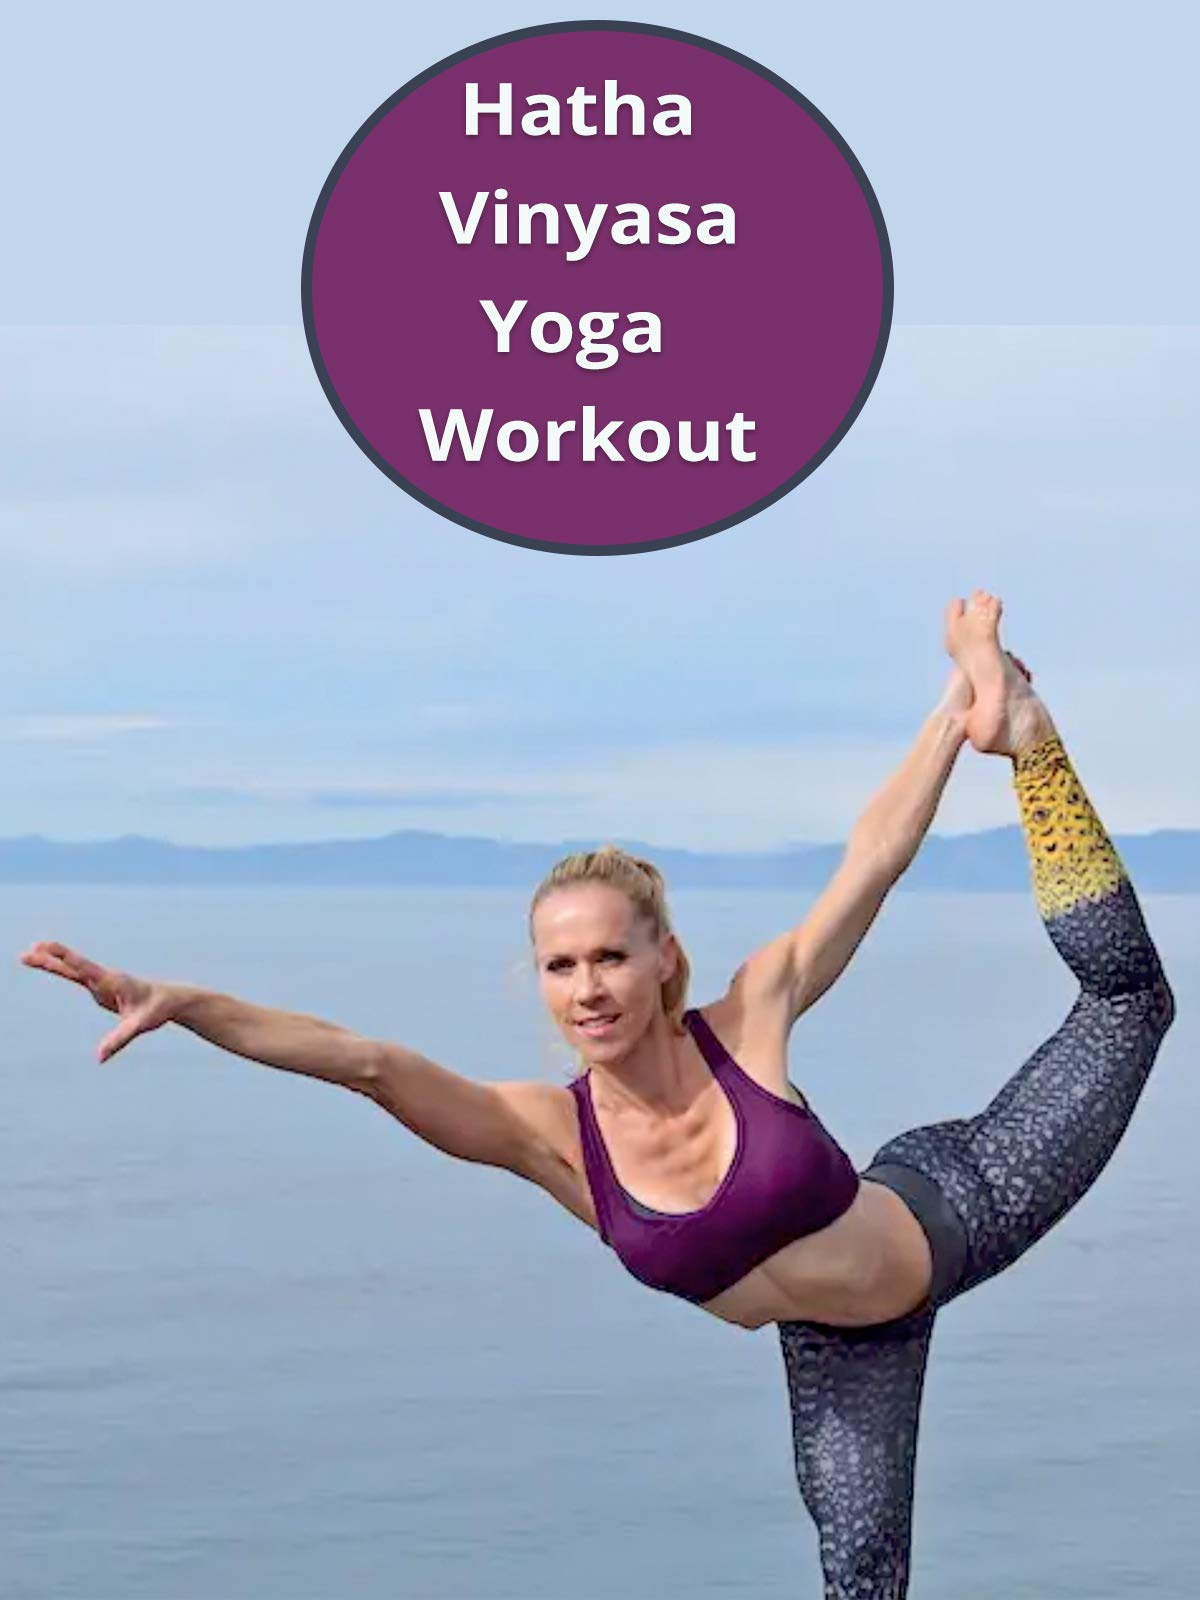 Amazon.com: Watch Hatha Vinyasa Yoga Workout | Prime Video